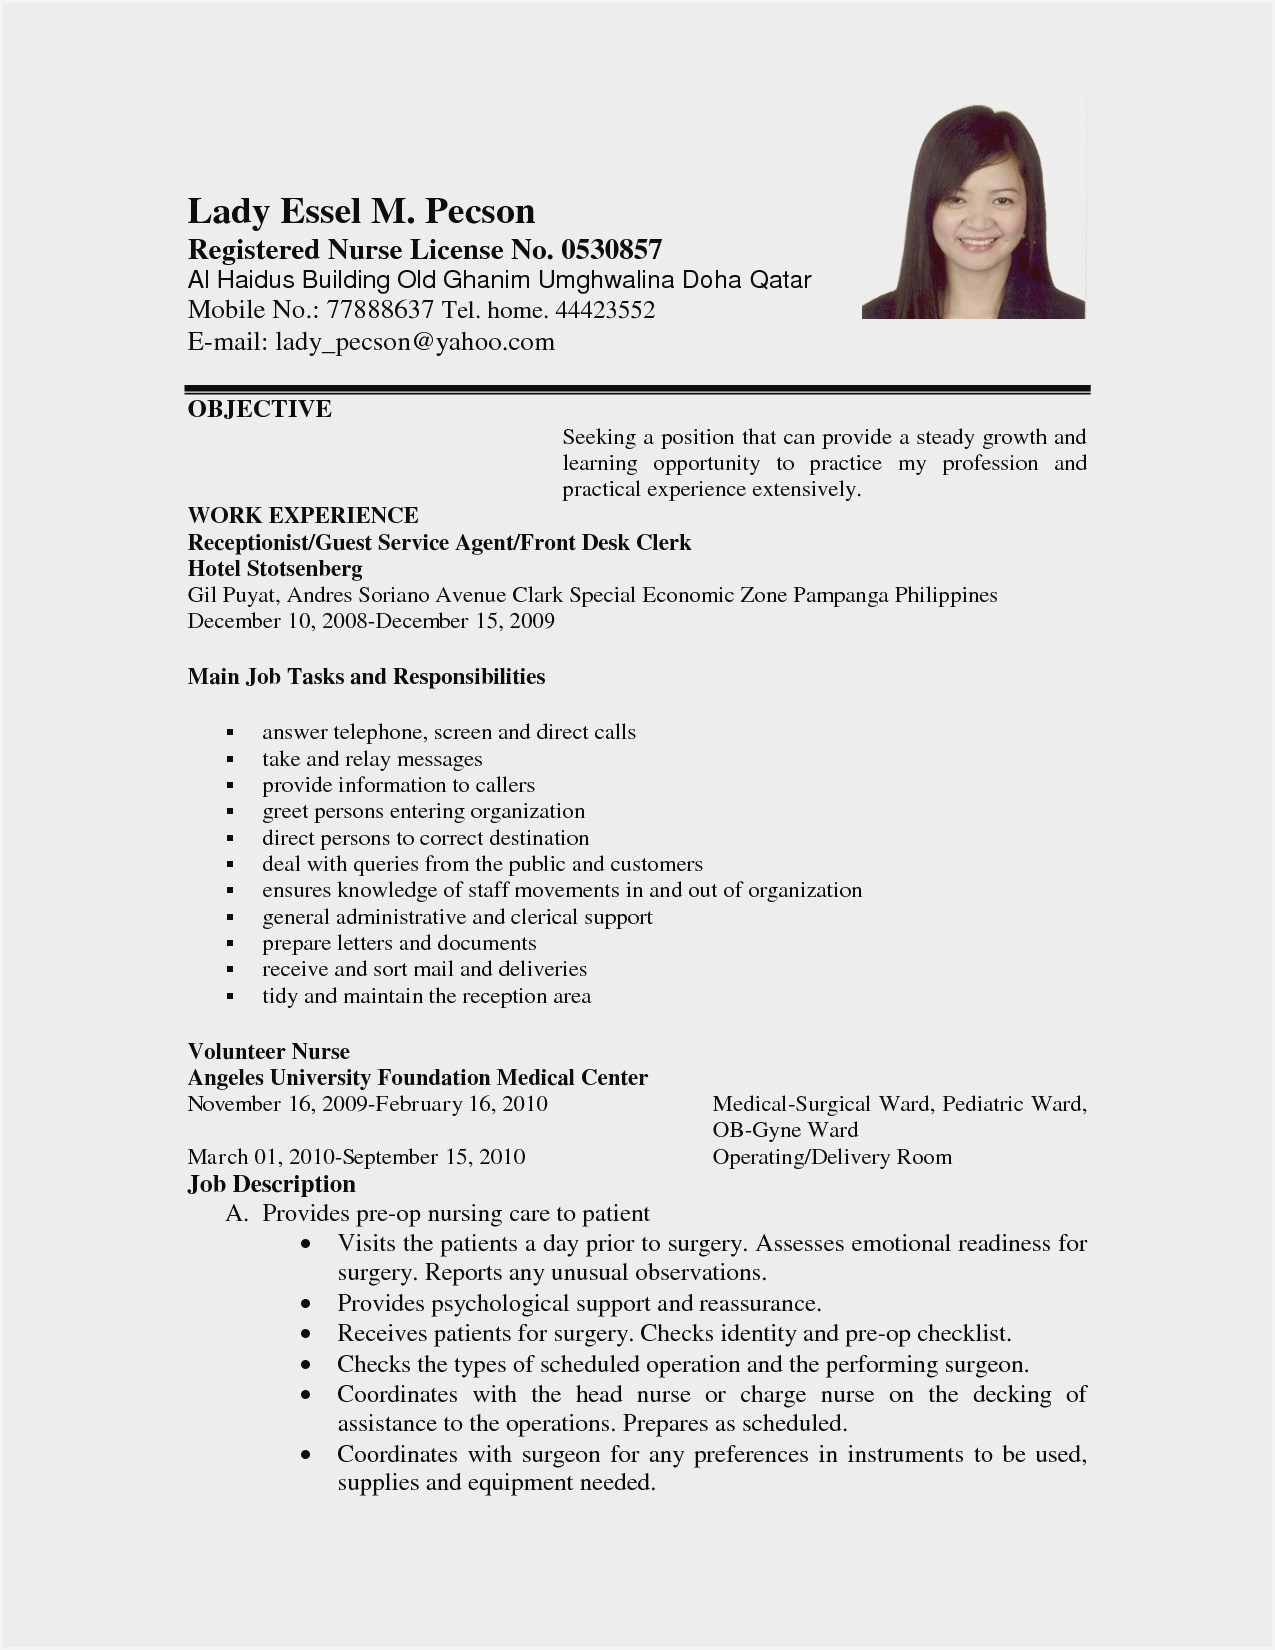 sample resume format for work abroad experience free current templates best names monster Resume Experience Sample Resume